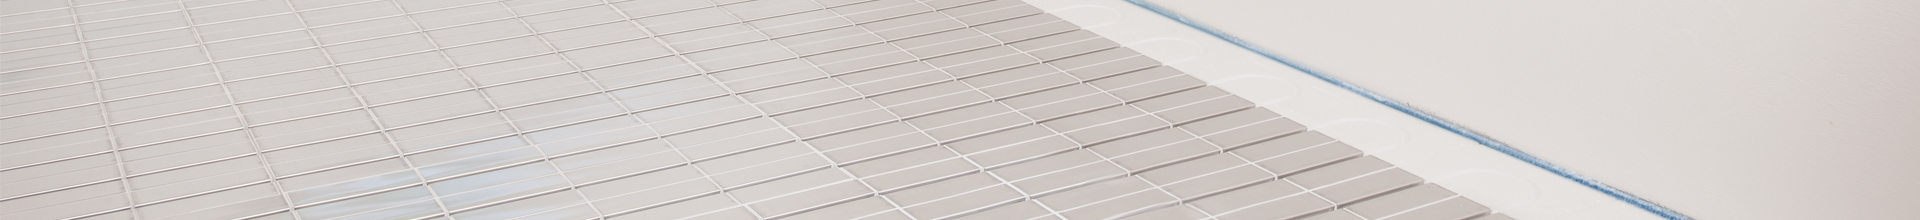 You can order the QuickTherm underfloor heating components individually